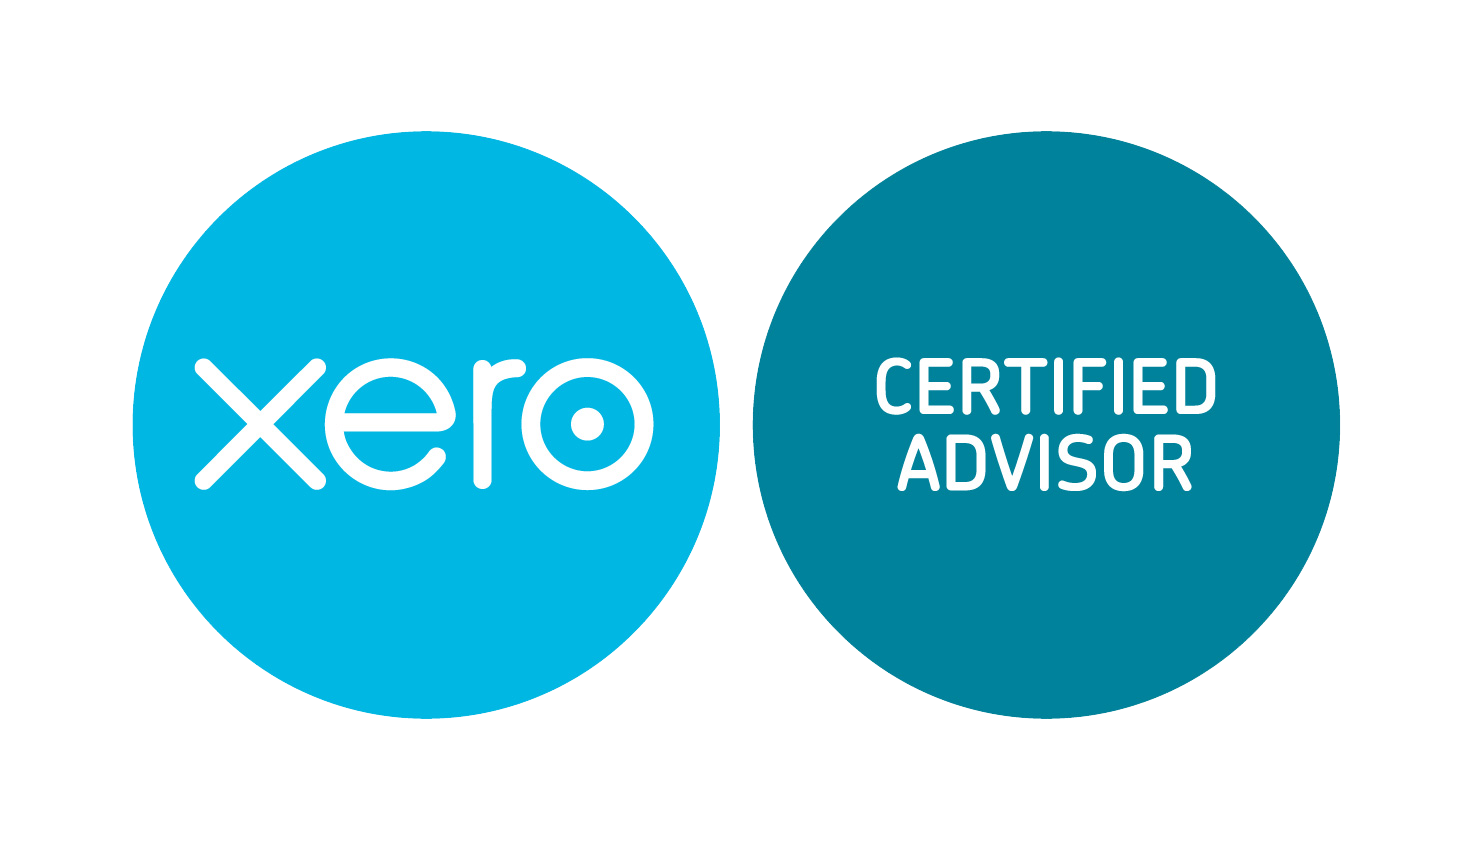 xero-certified-advisor-Transparent